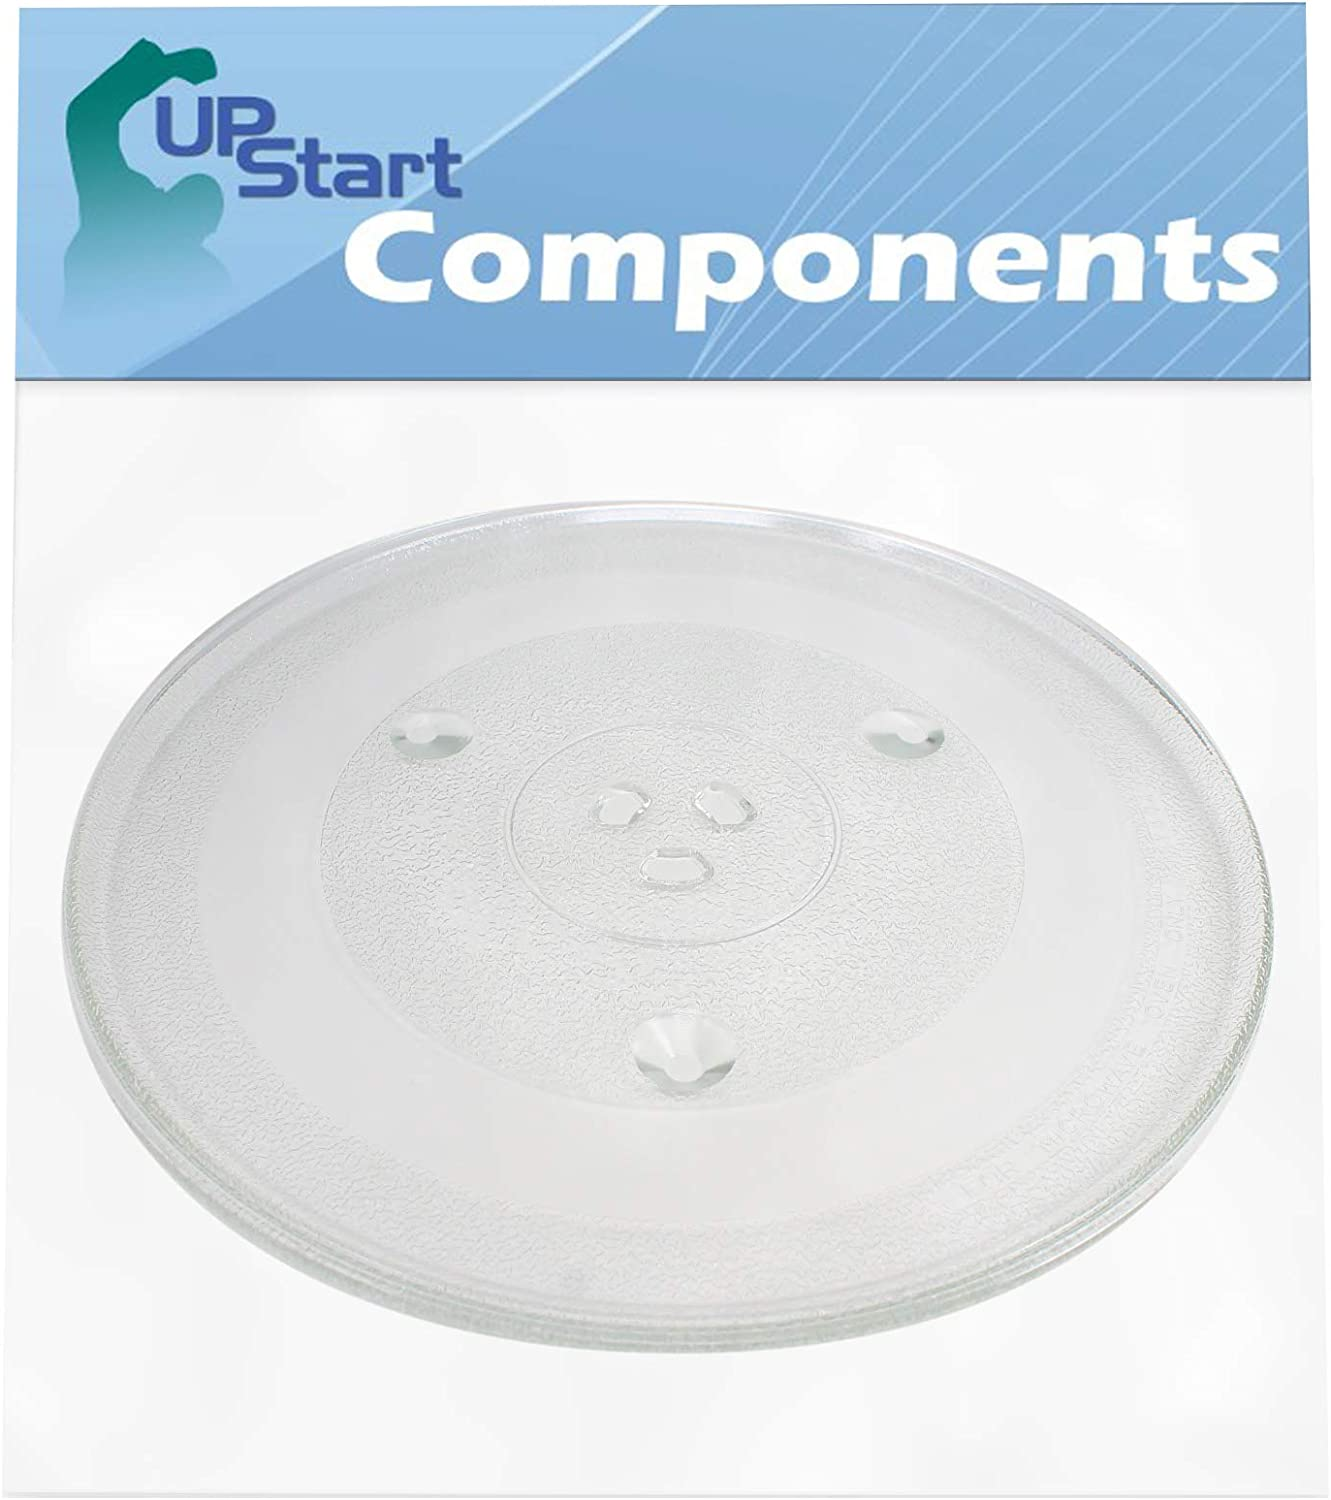 P34 Microwave Glass Turntable Plate Replacement for Hamilton Beach P100N30AL - Compatible with P34 12 3/8 Inch Glass Tray